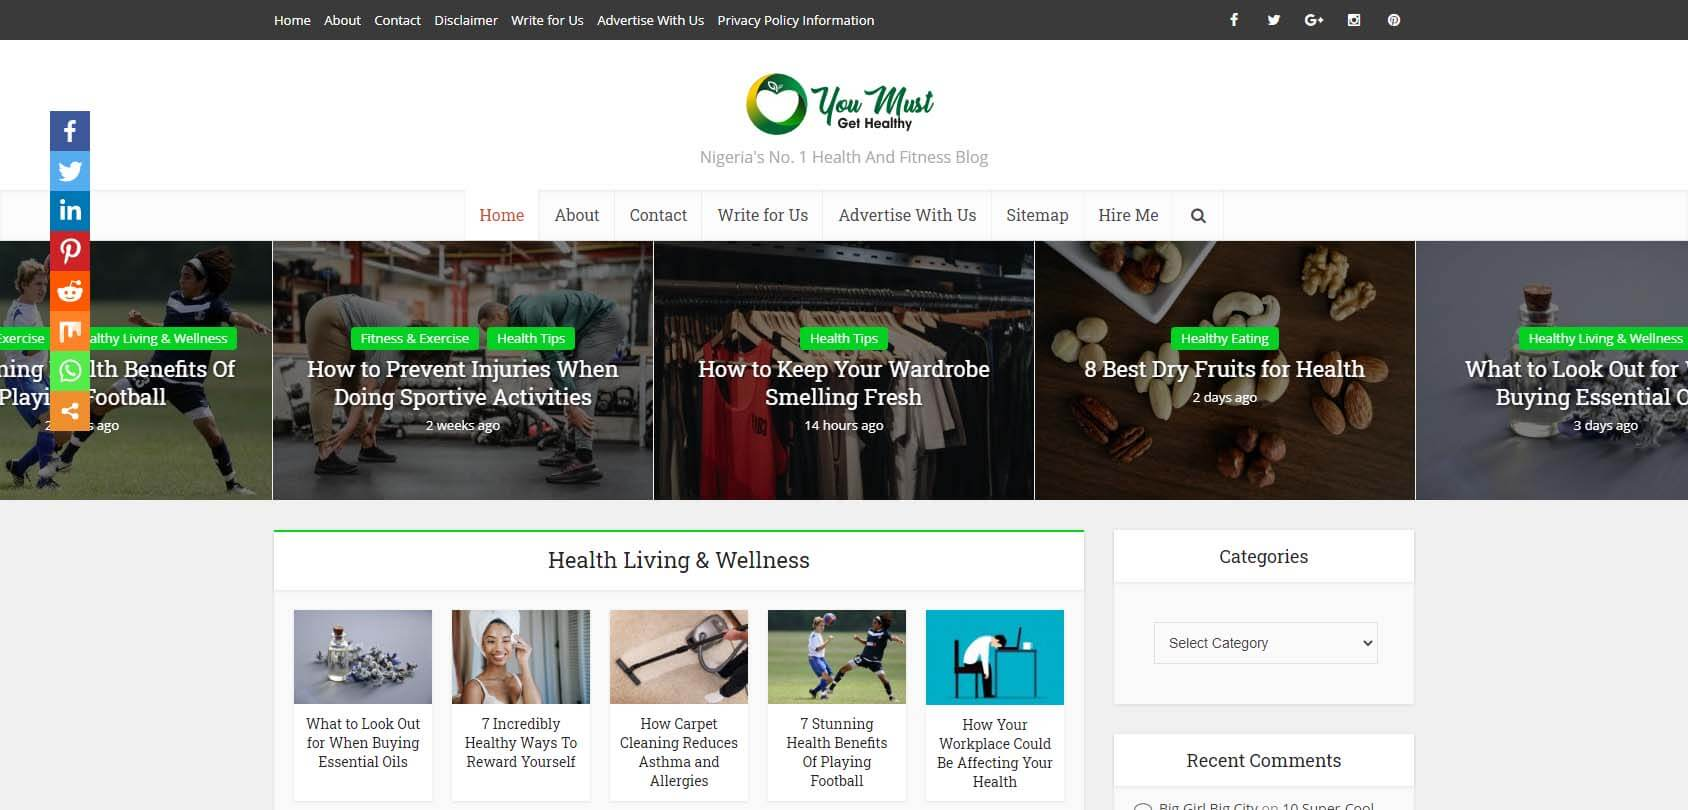 You Must Get Healthy Homepage